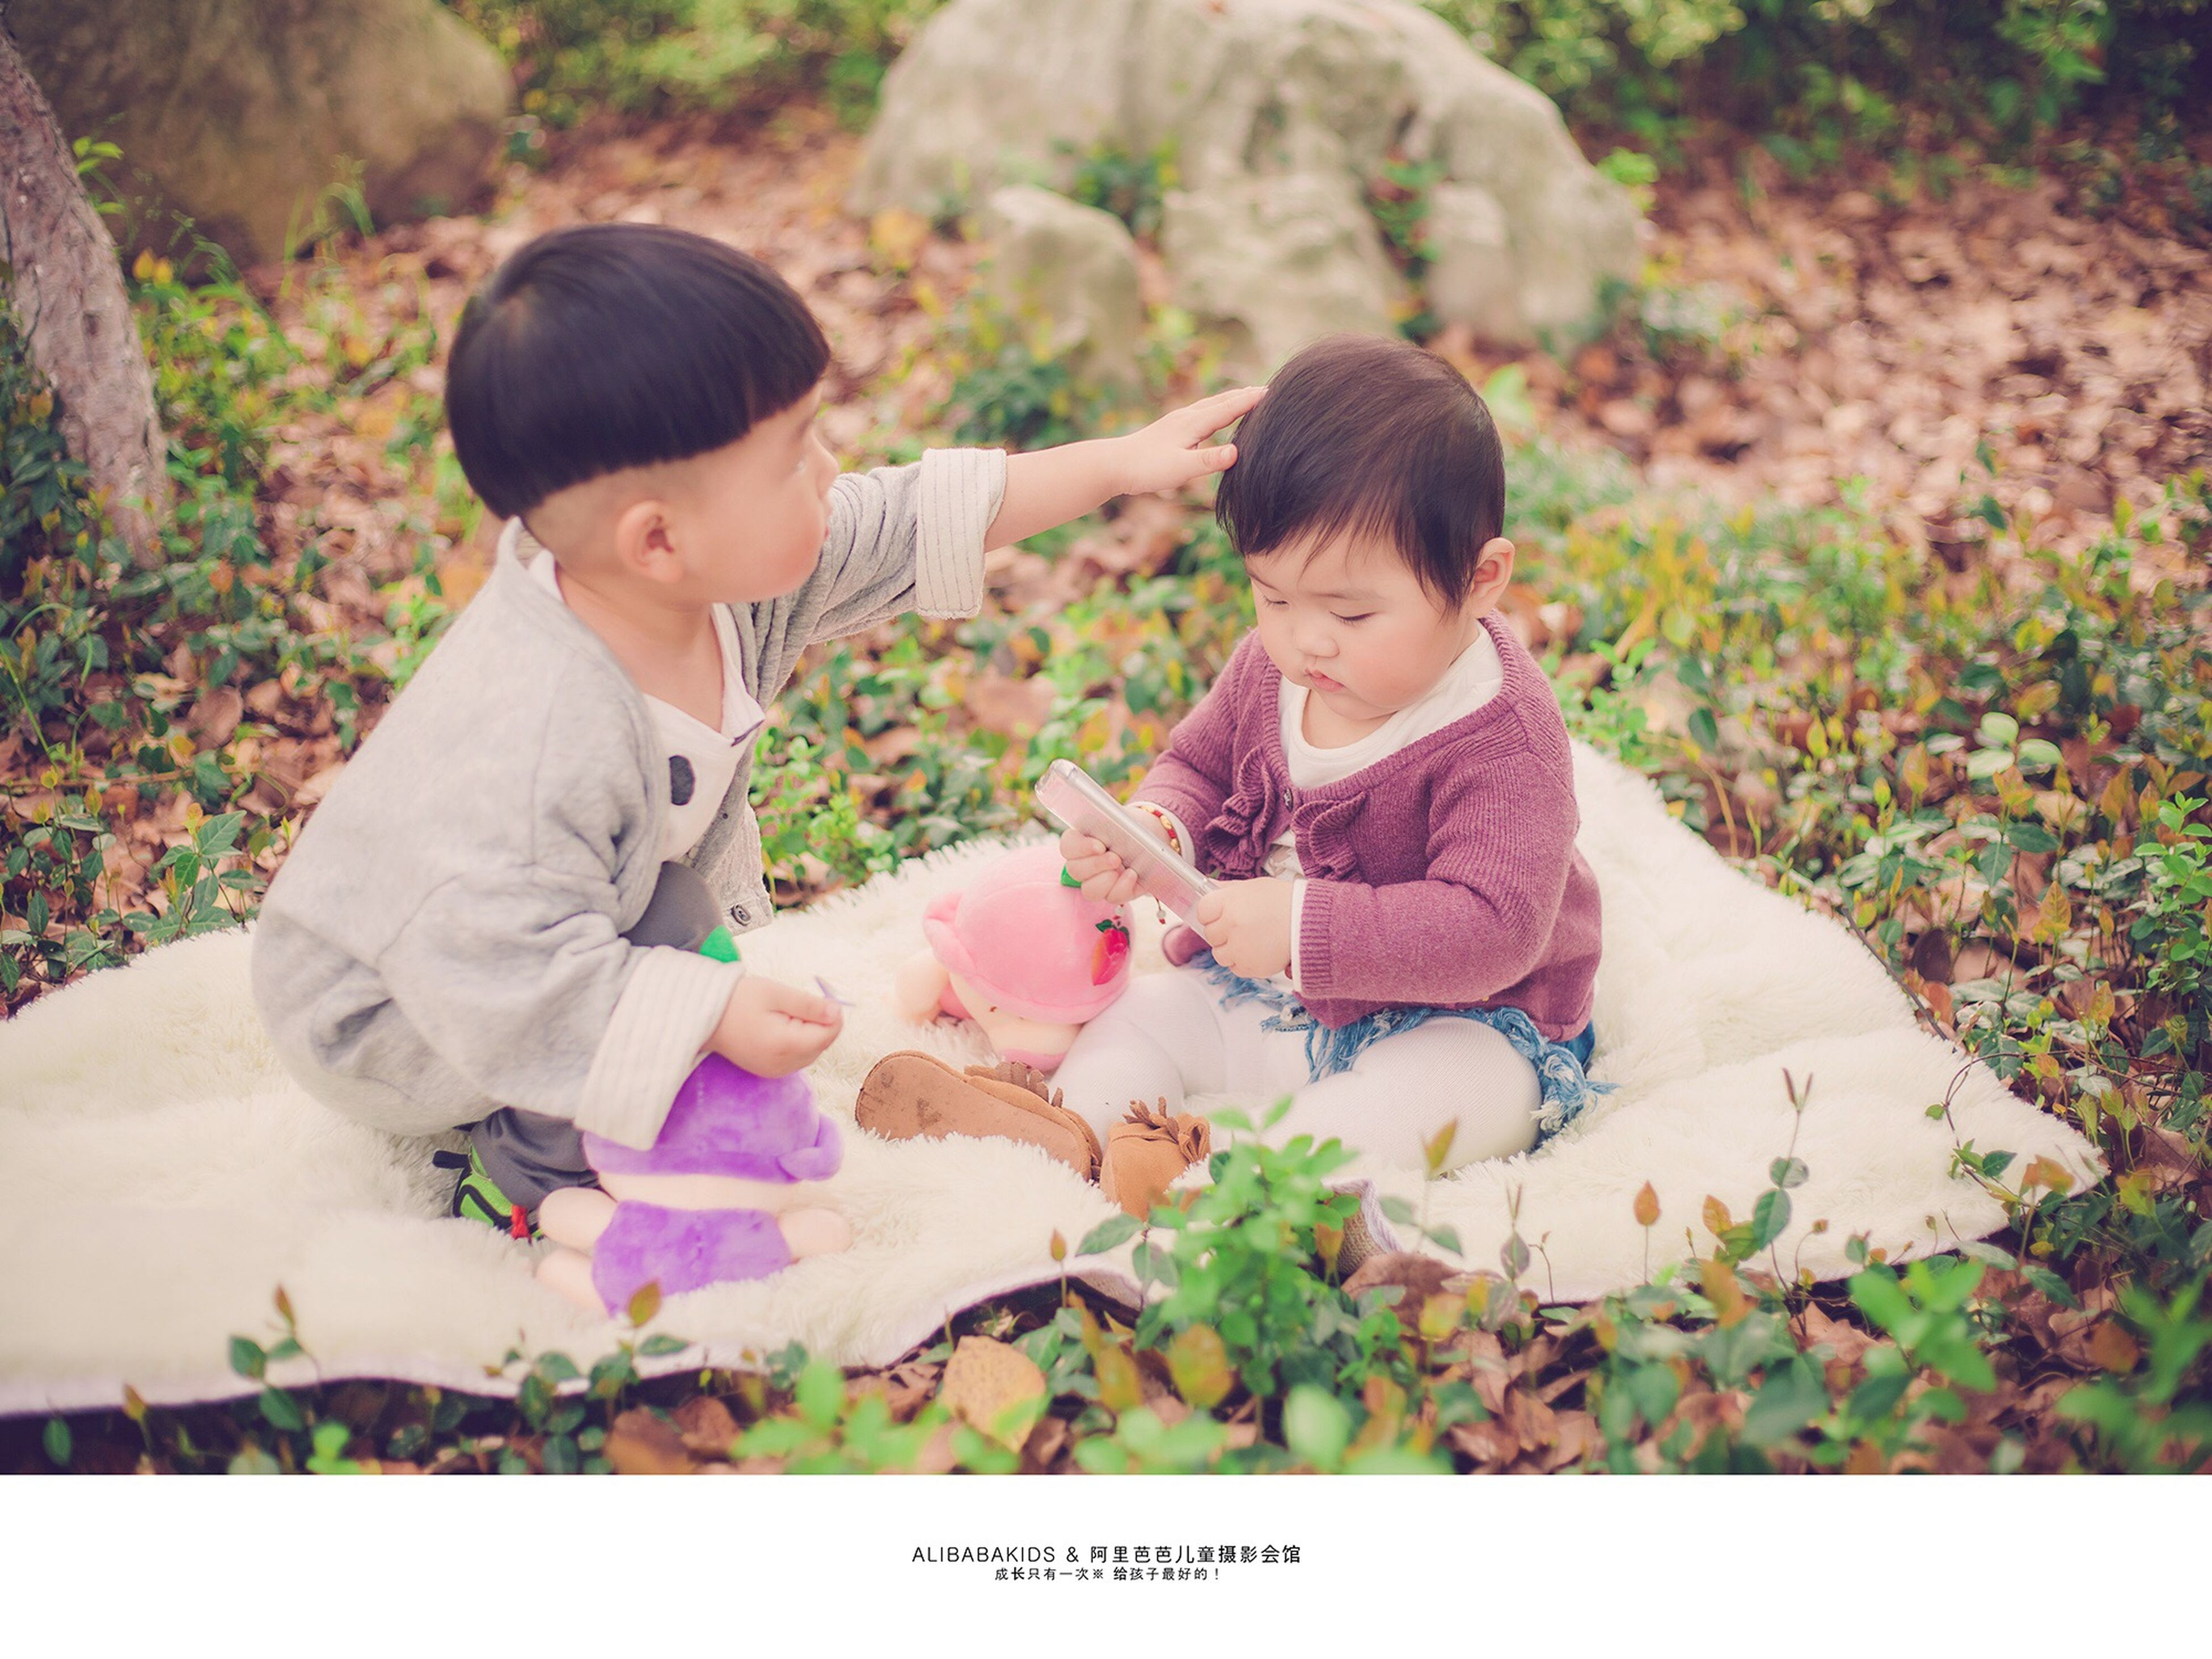 lifestyles, leisure activity, childhood, person, casual clothing, togetherness, elementary age, boys, bonding, holding, love, innocence, cute, sitting, standing, high angle view, field